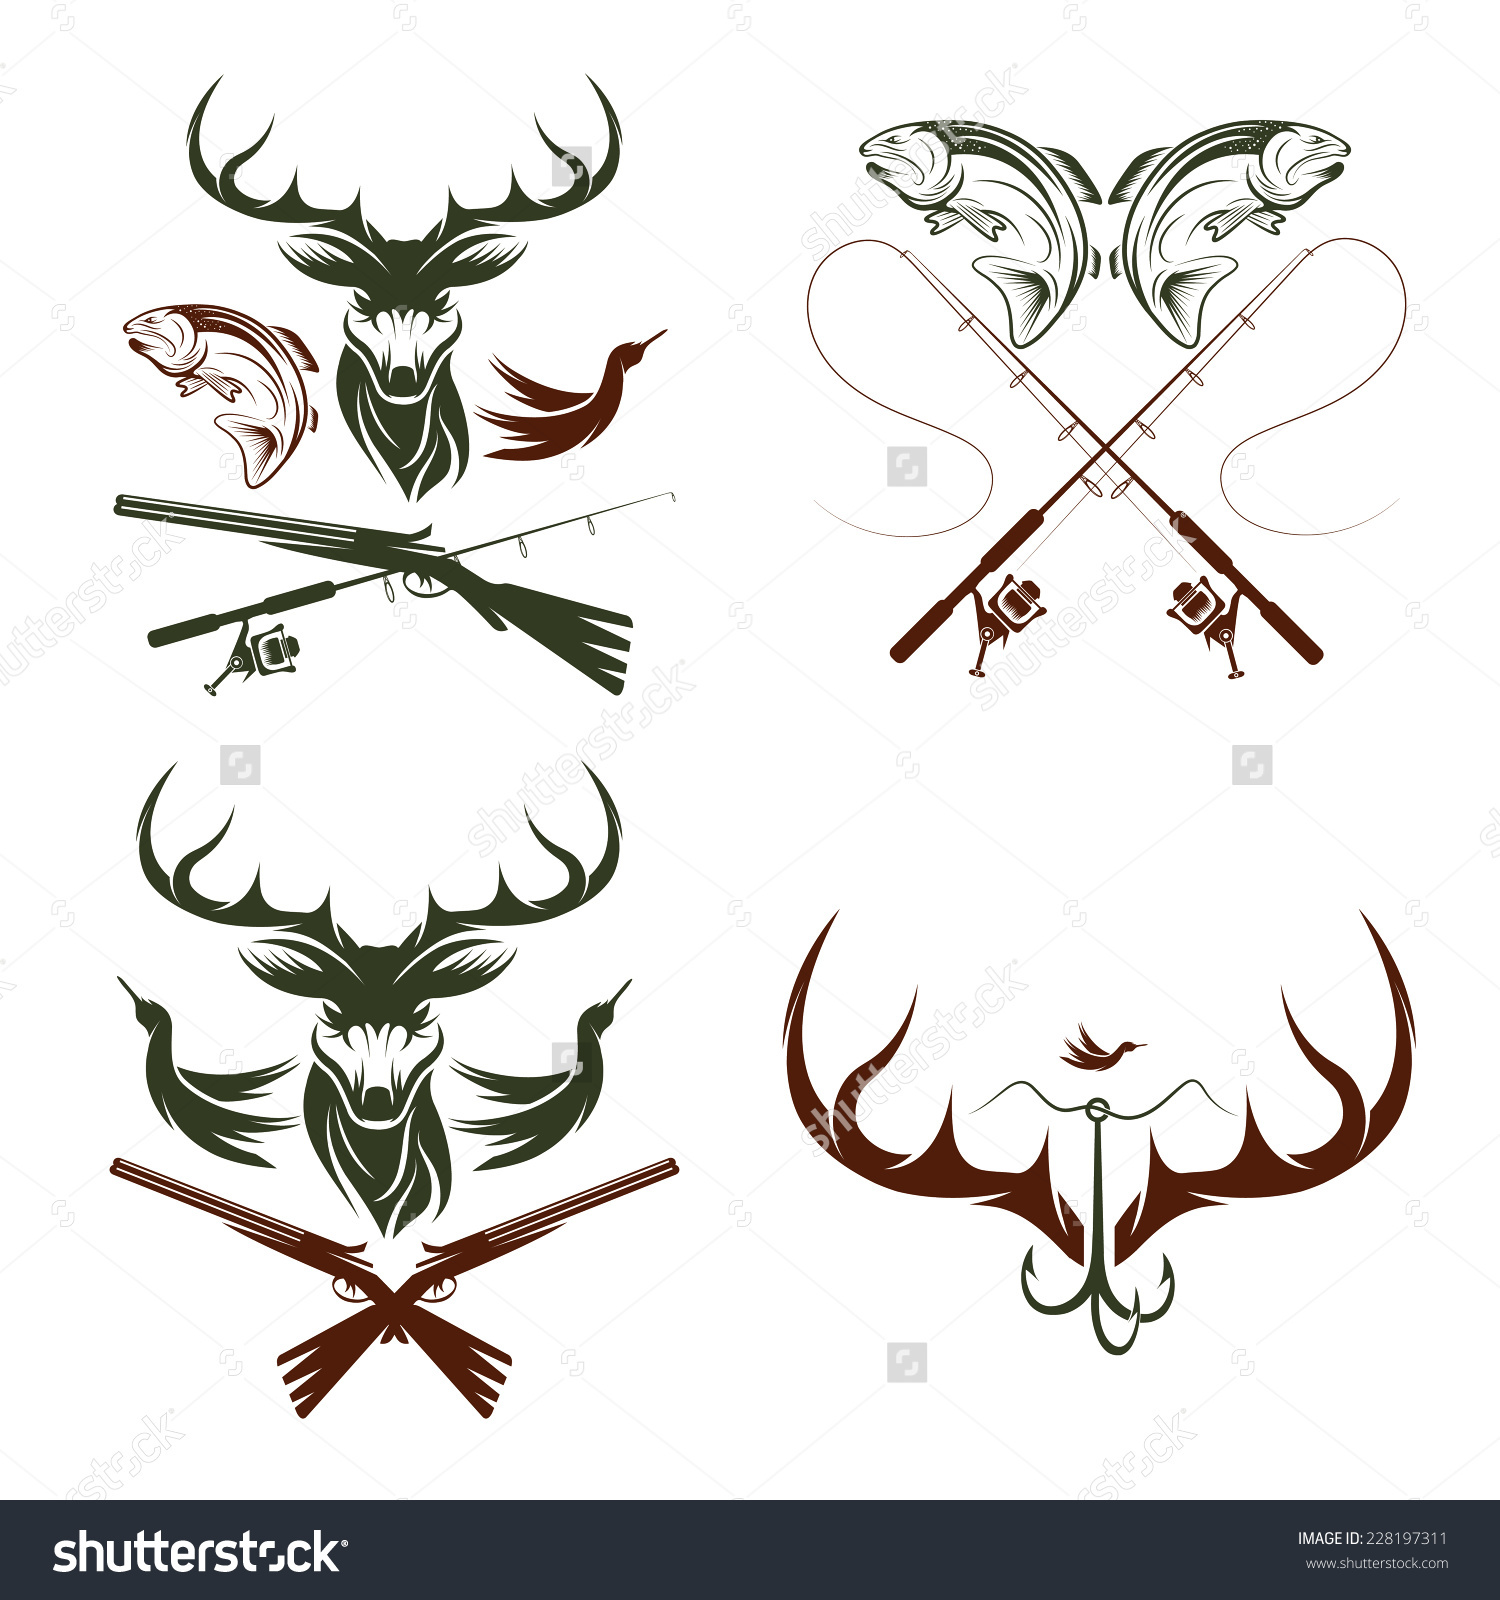 3001 Hunting free clipart.